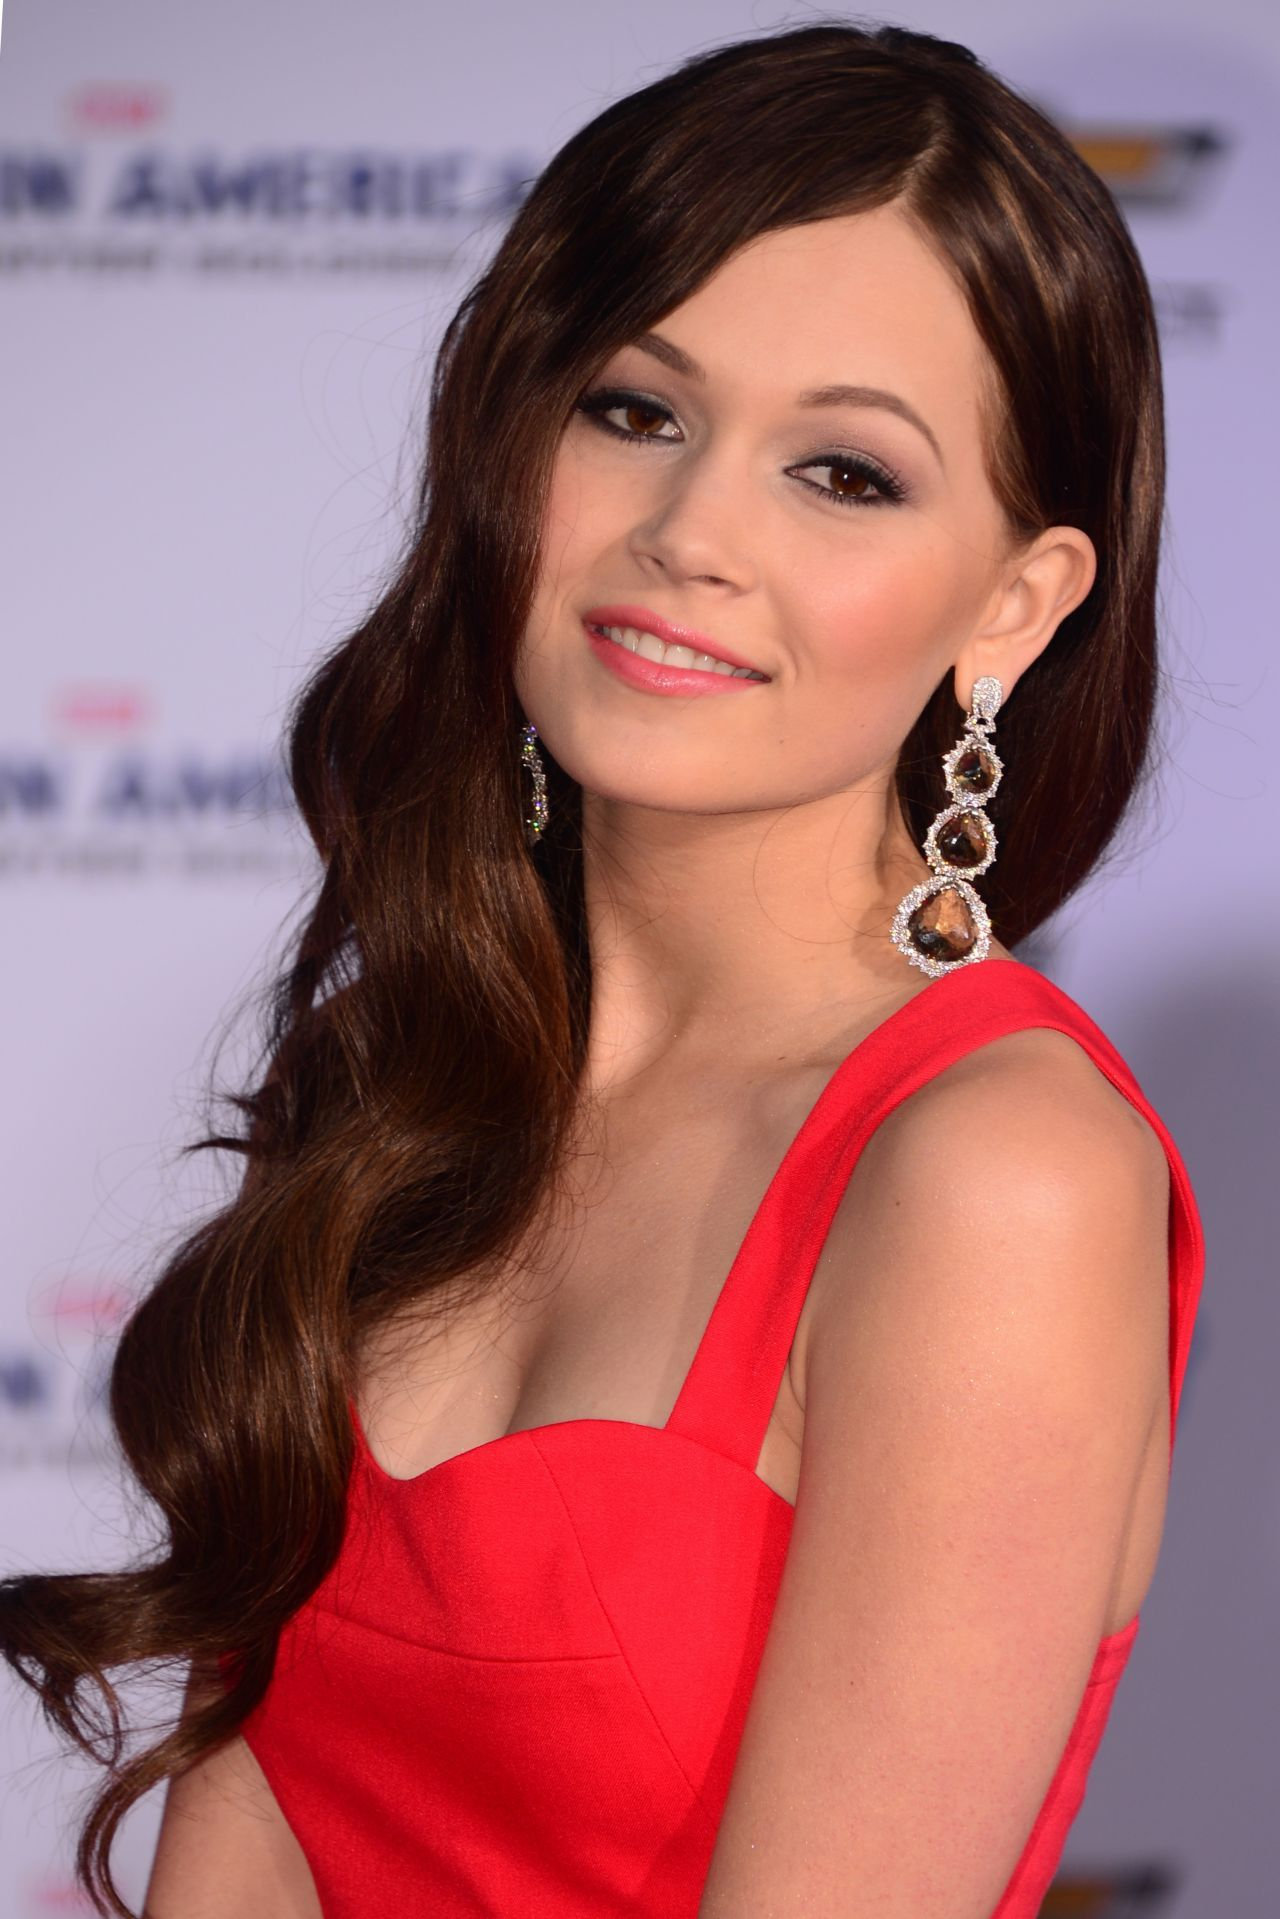 kelli berglund fansitekelli berglund instagram, kelli berglund dance, kelli berglund wiki, kelli berglund height weight, kelli berglund age, kelli berglund height in feet, kelli berglund blonde hair, kelli berglund bree davenport, kelli berglund kirra berglund, kelli berglund address, kelli berglund fansite, kelli berglund something real, kelli berglund twitter